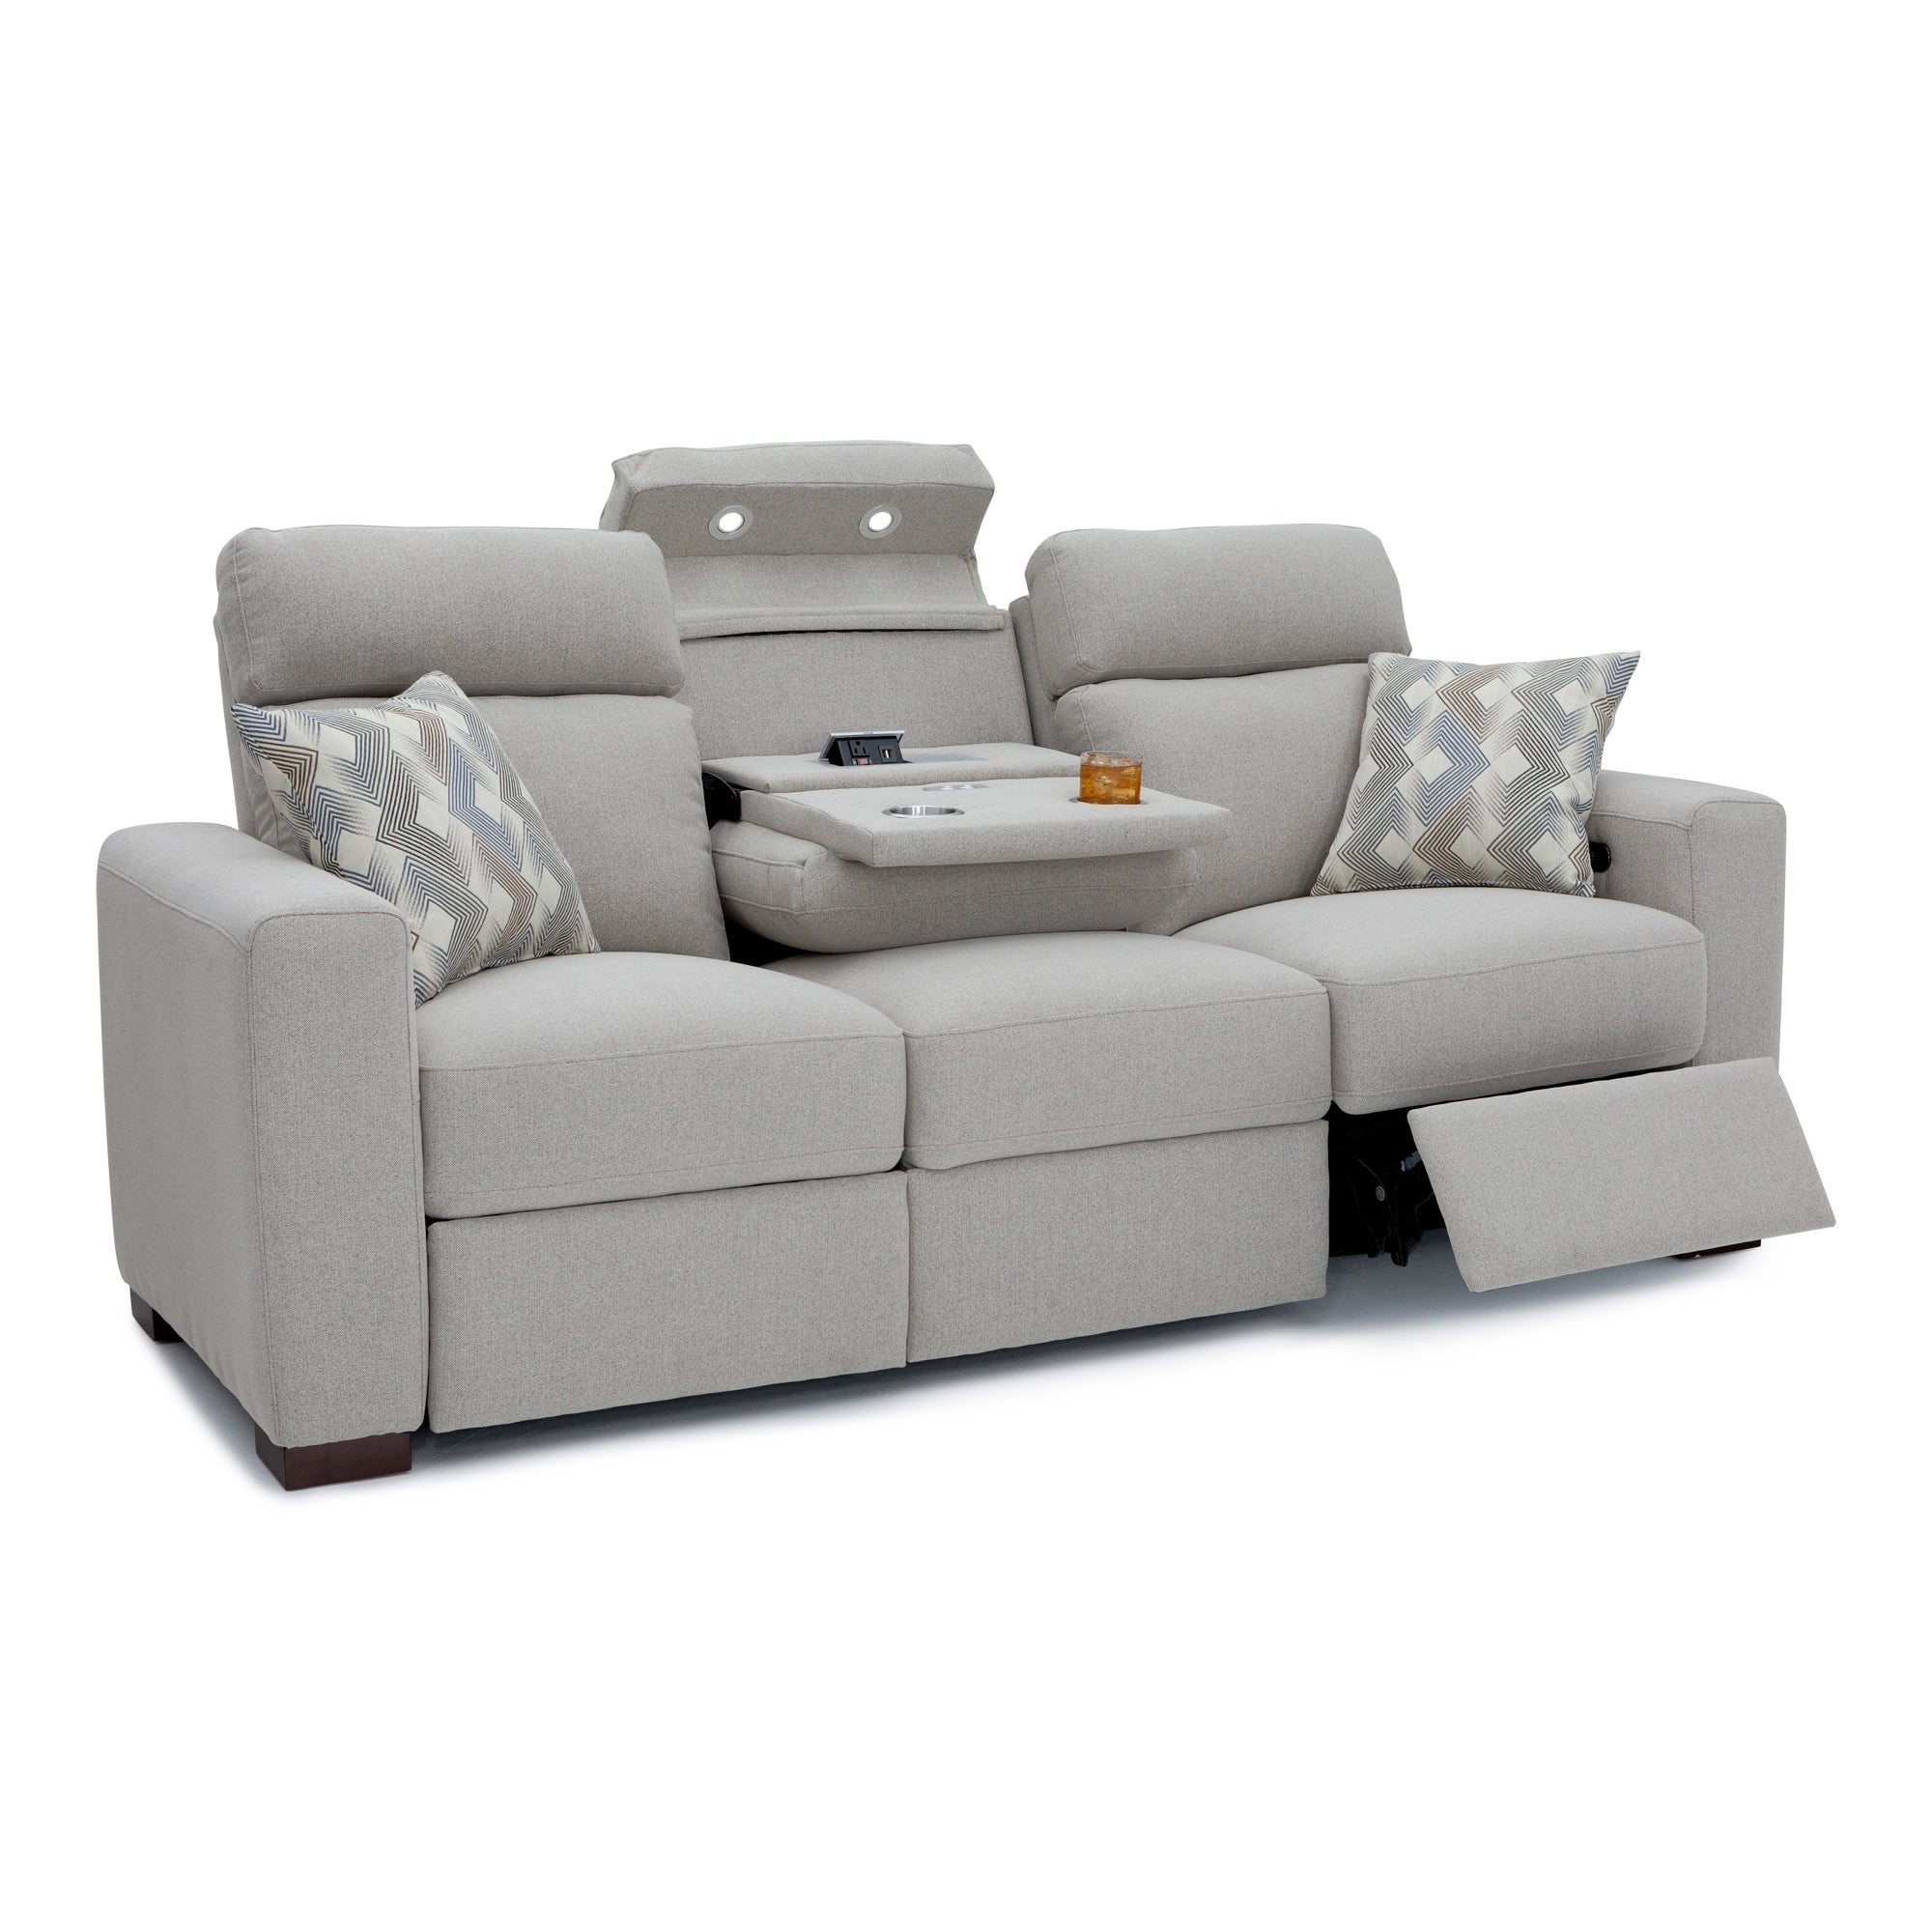 Shop Seatcraft Capital Home Theater Seating Fabric Power Recline